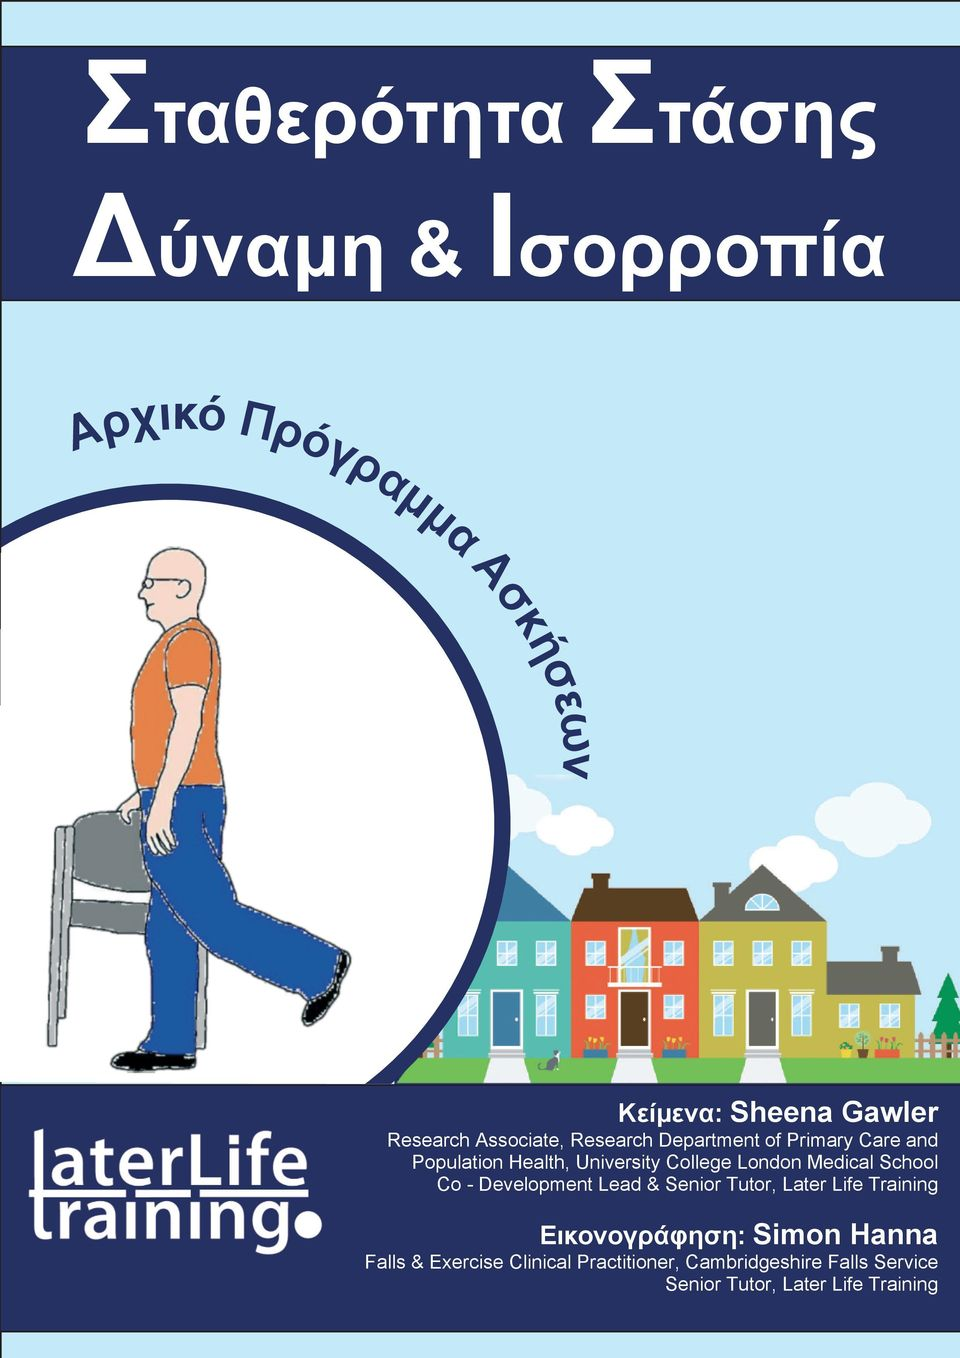 Medical School Co - Development Lead & Senior Tutor, Later Life Training Εικονογράφηση: Simon